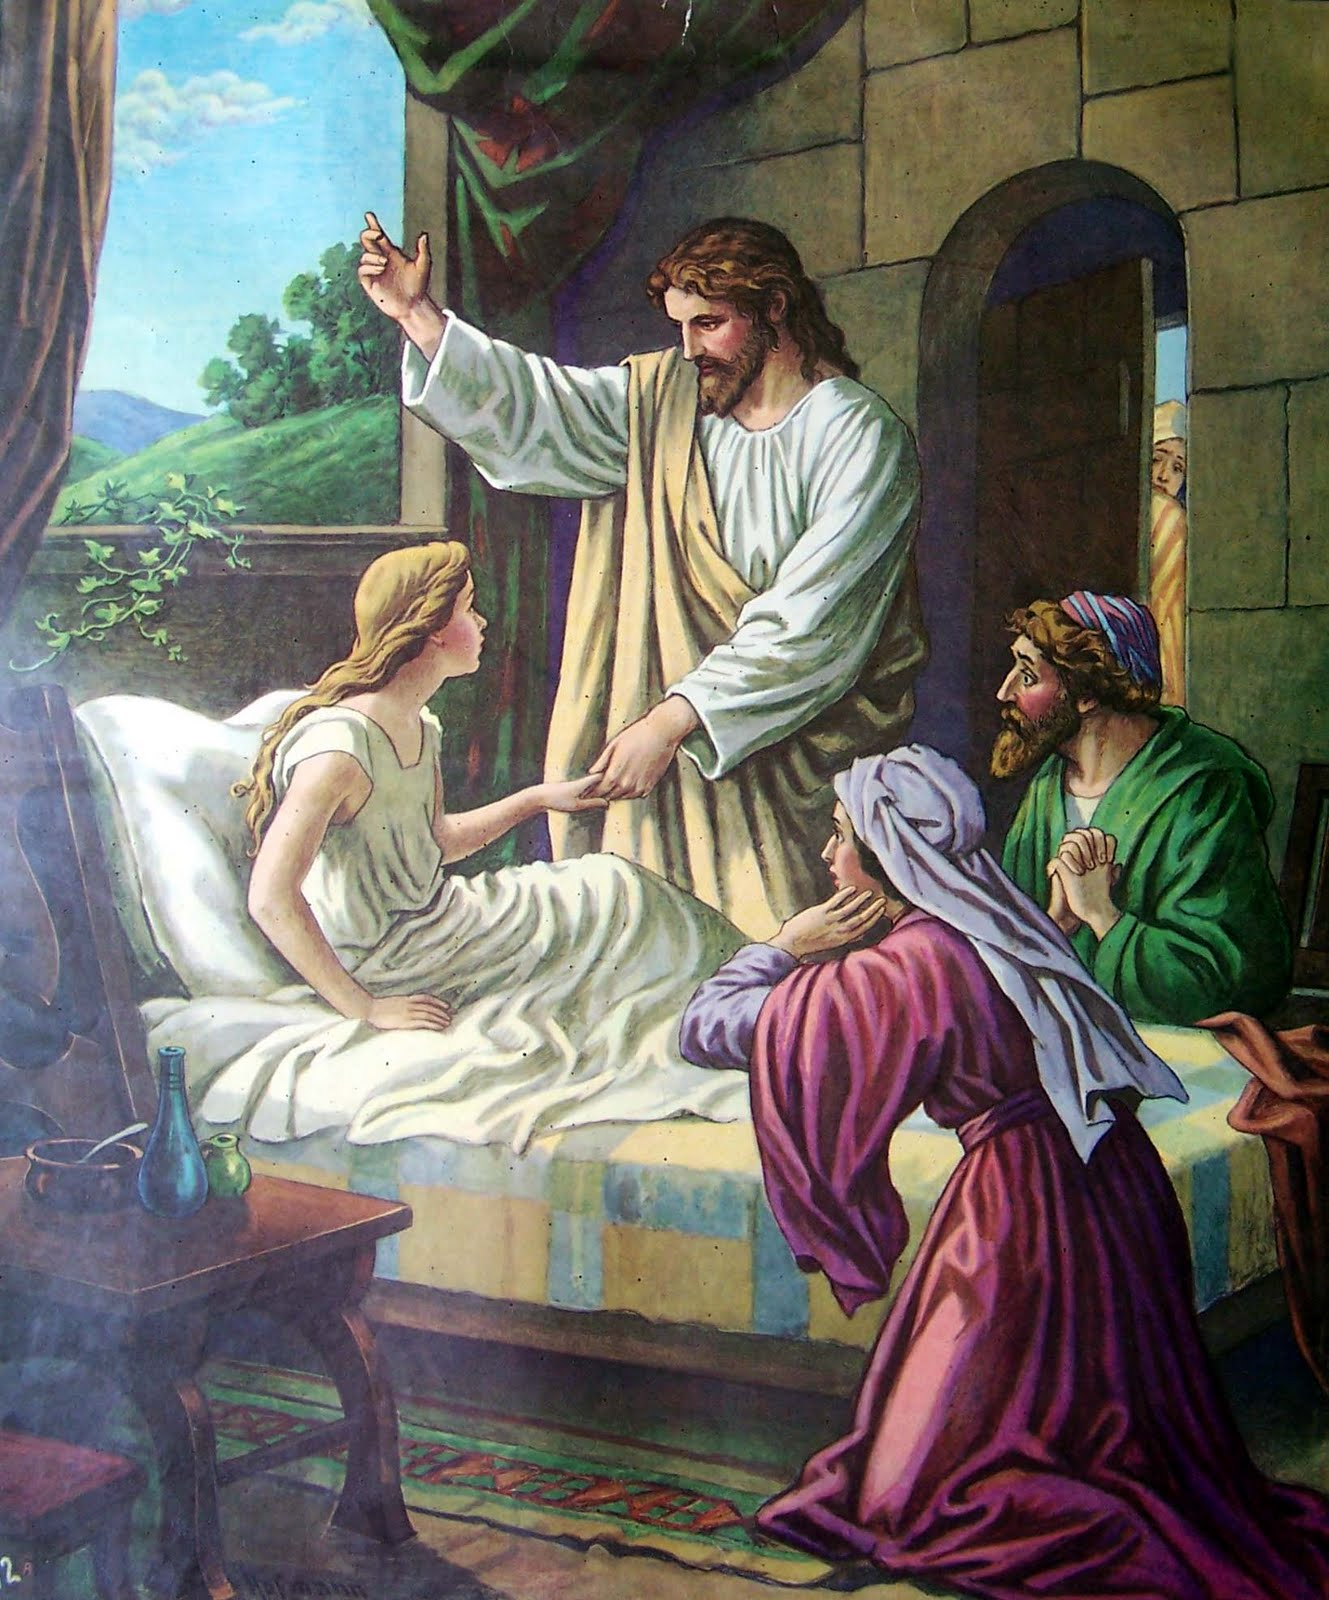 Year 9 Religion: Jesus Raises a Dead Girl and Heals a Sick Woman